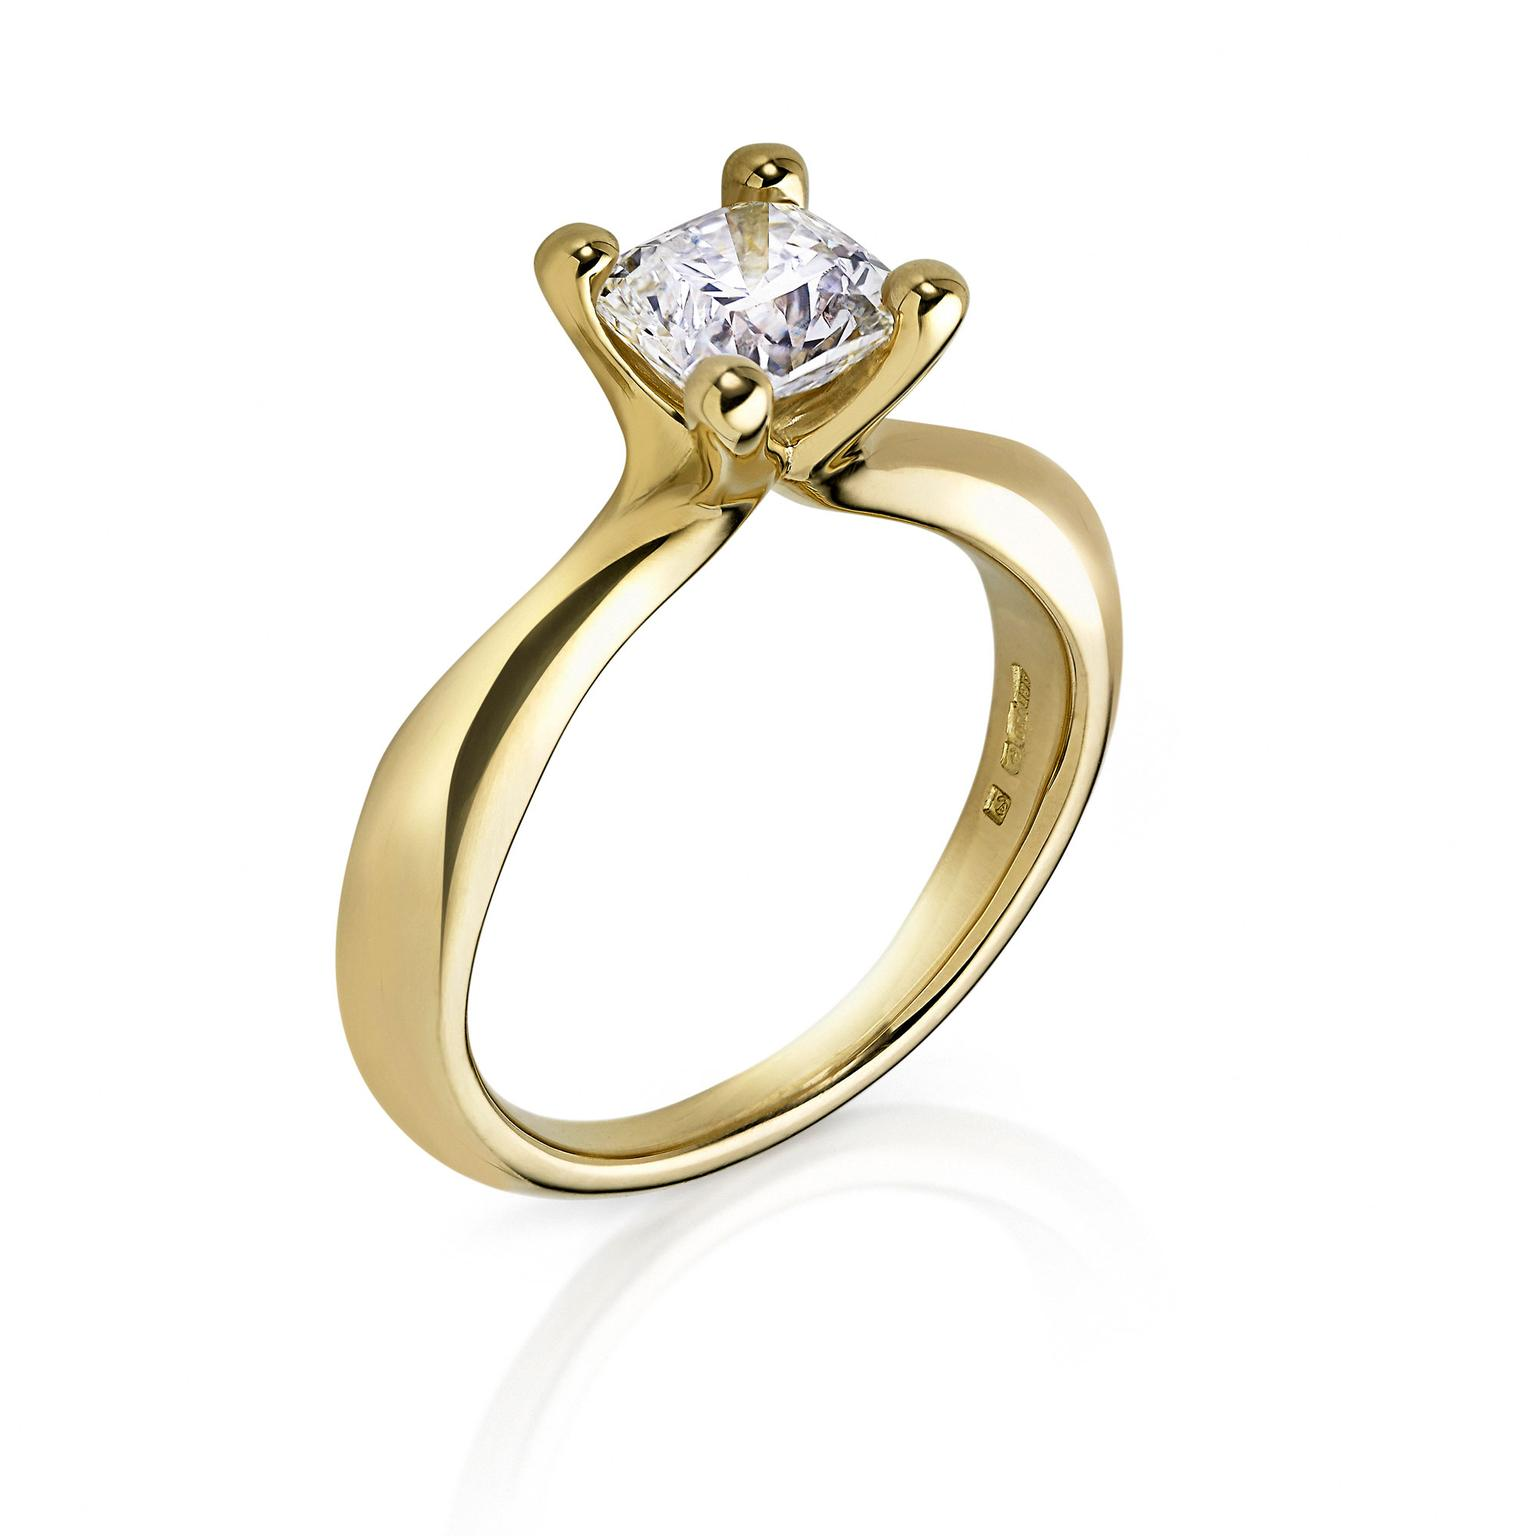 Arctic Circle Diamonds solitaire diamond ring